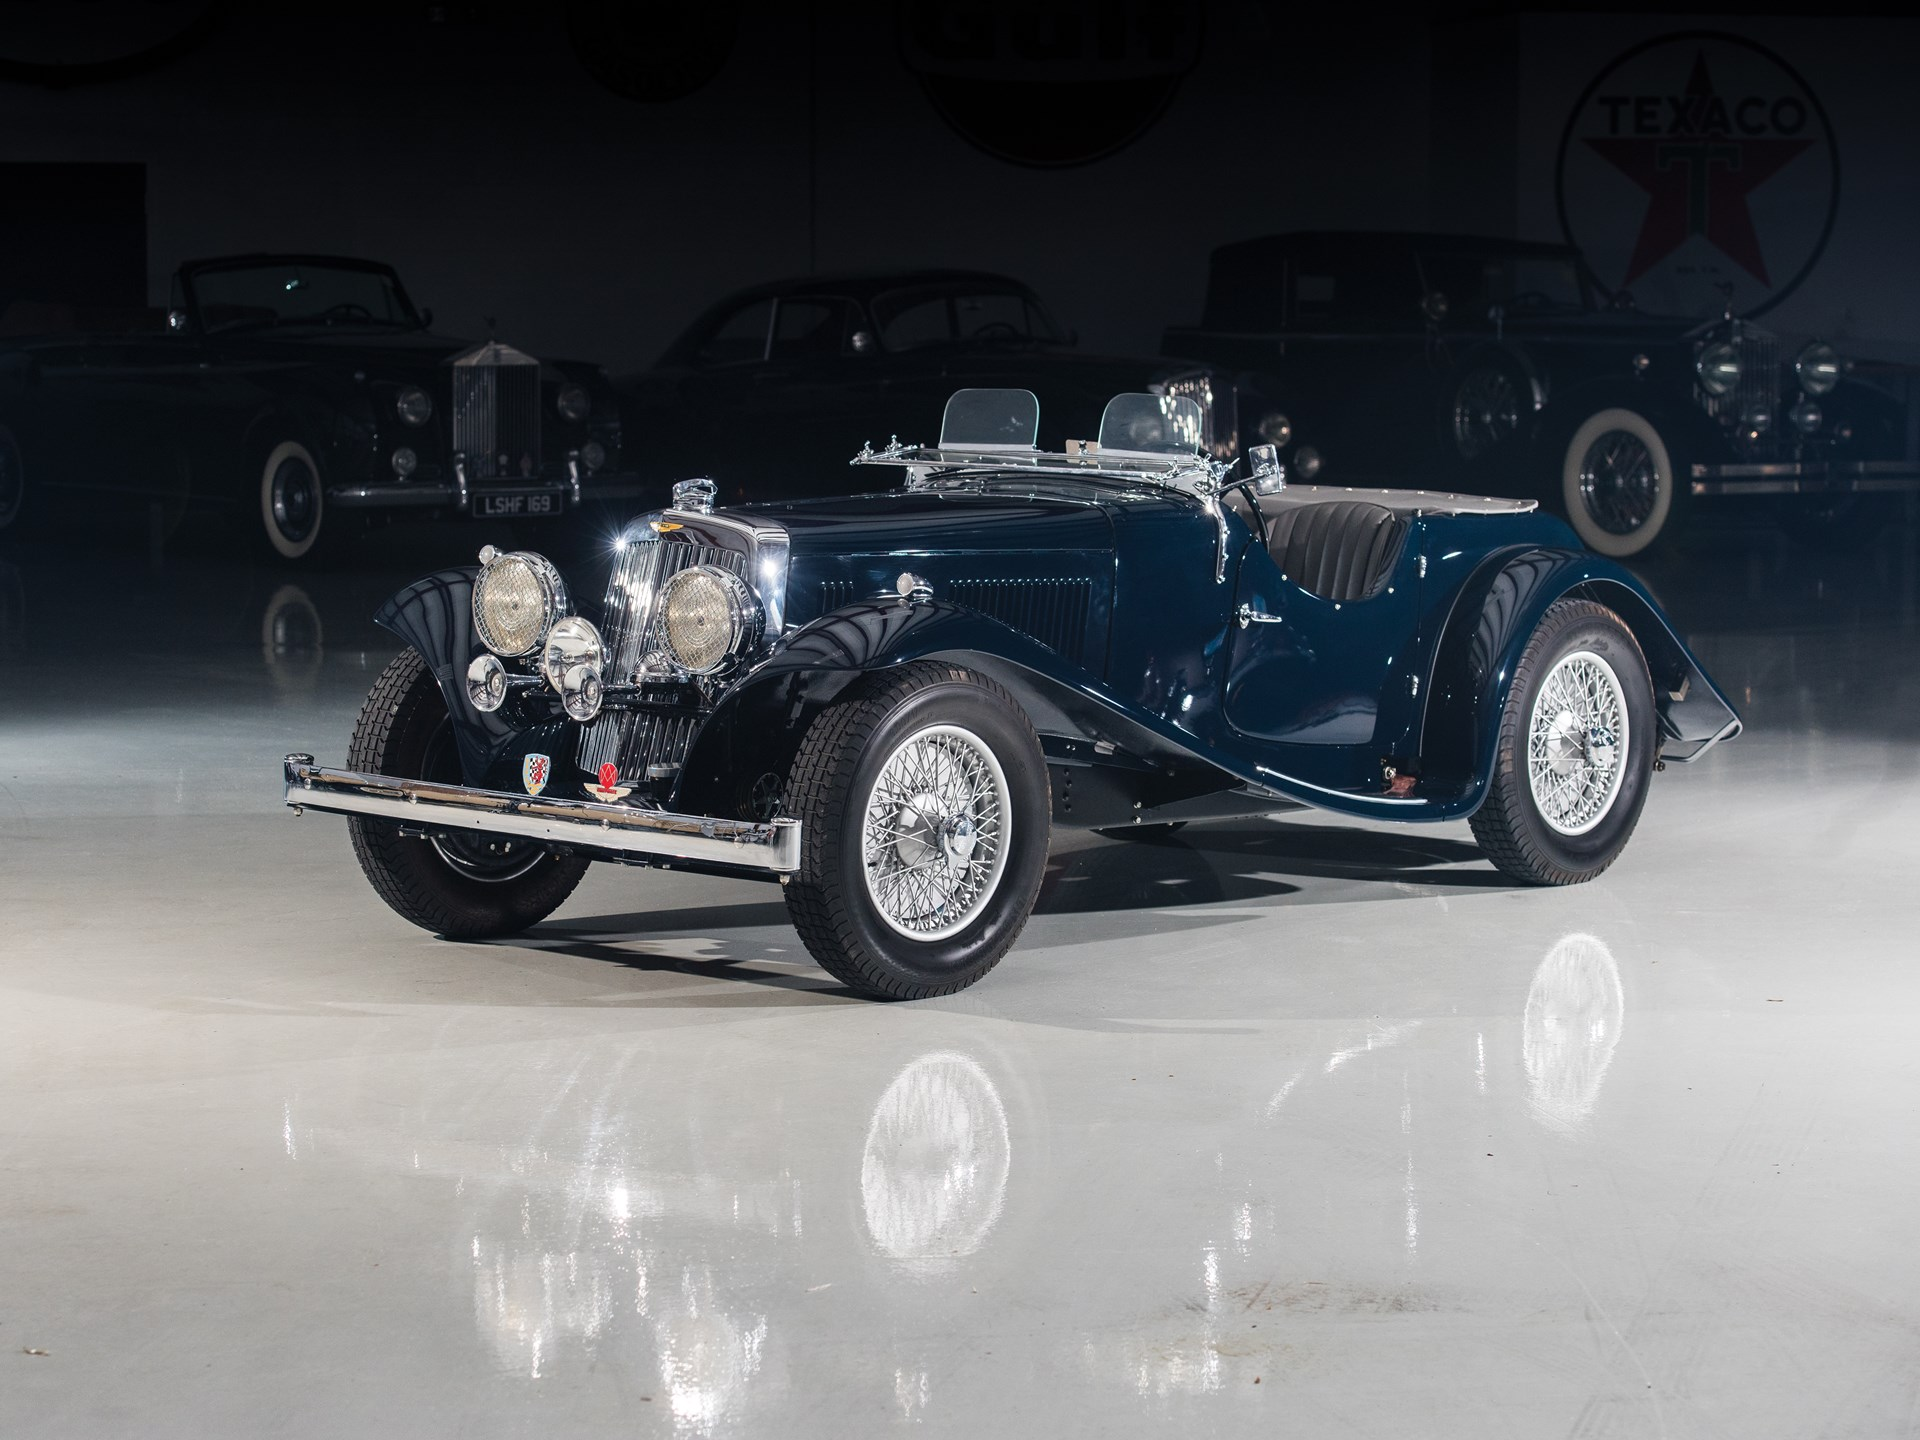 rm sotheby's - 1938 aston martin 15/98 'short-chassis' open sports